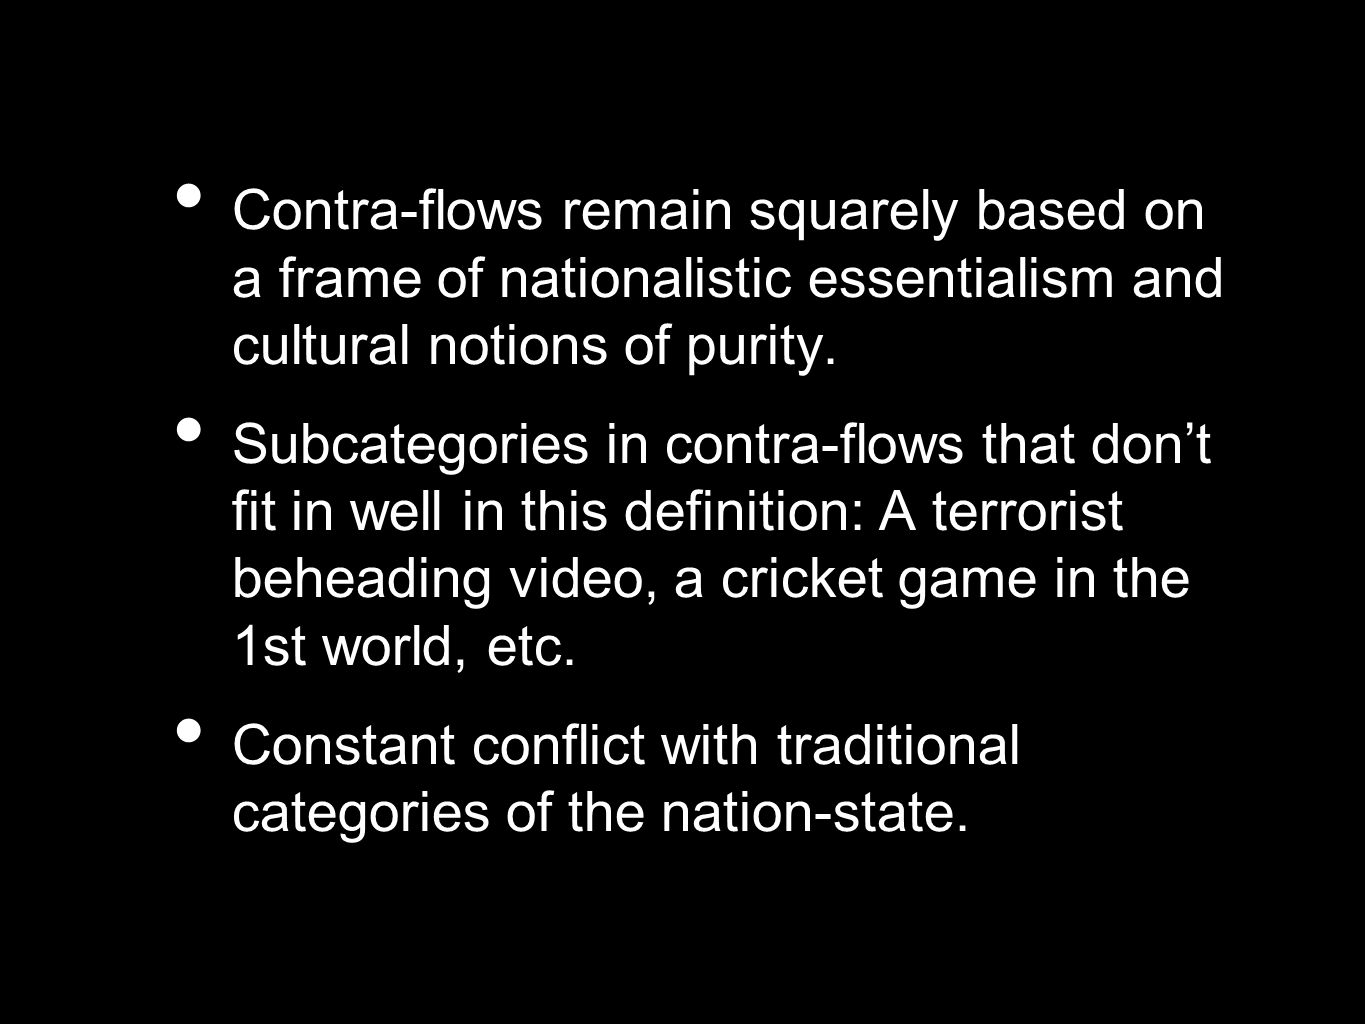 Contra-flows remain squarely based on a frame of nationalistic essentialism and cultural notions of purity. Subcategories in contra-flows that dont fi